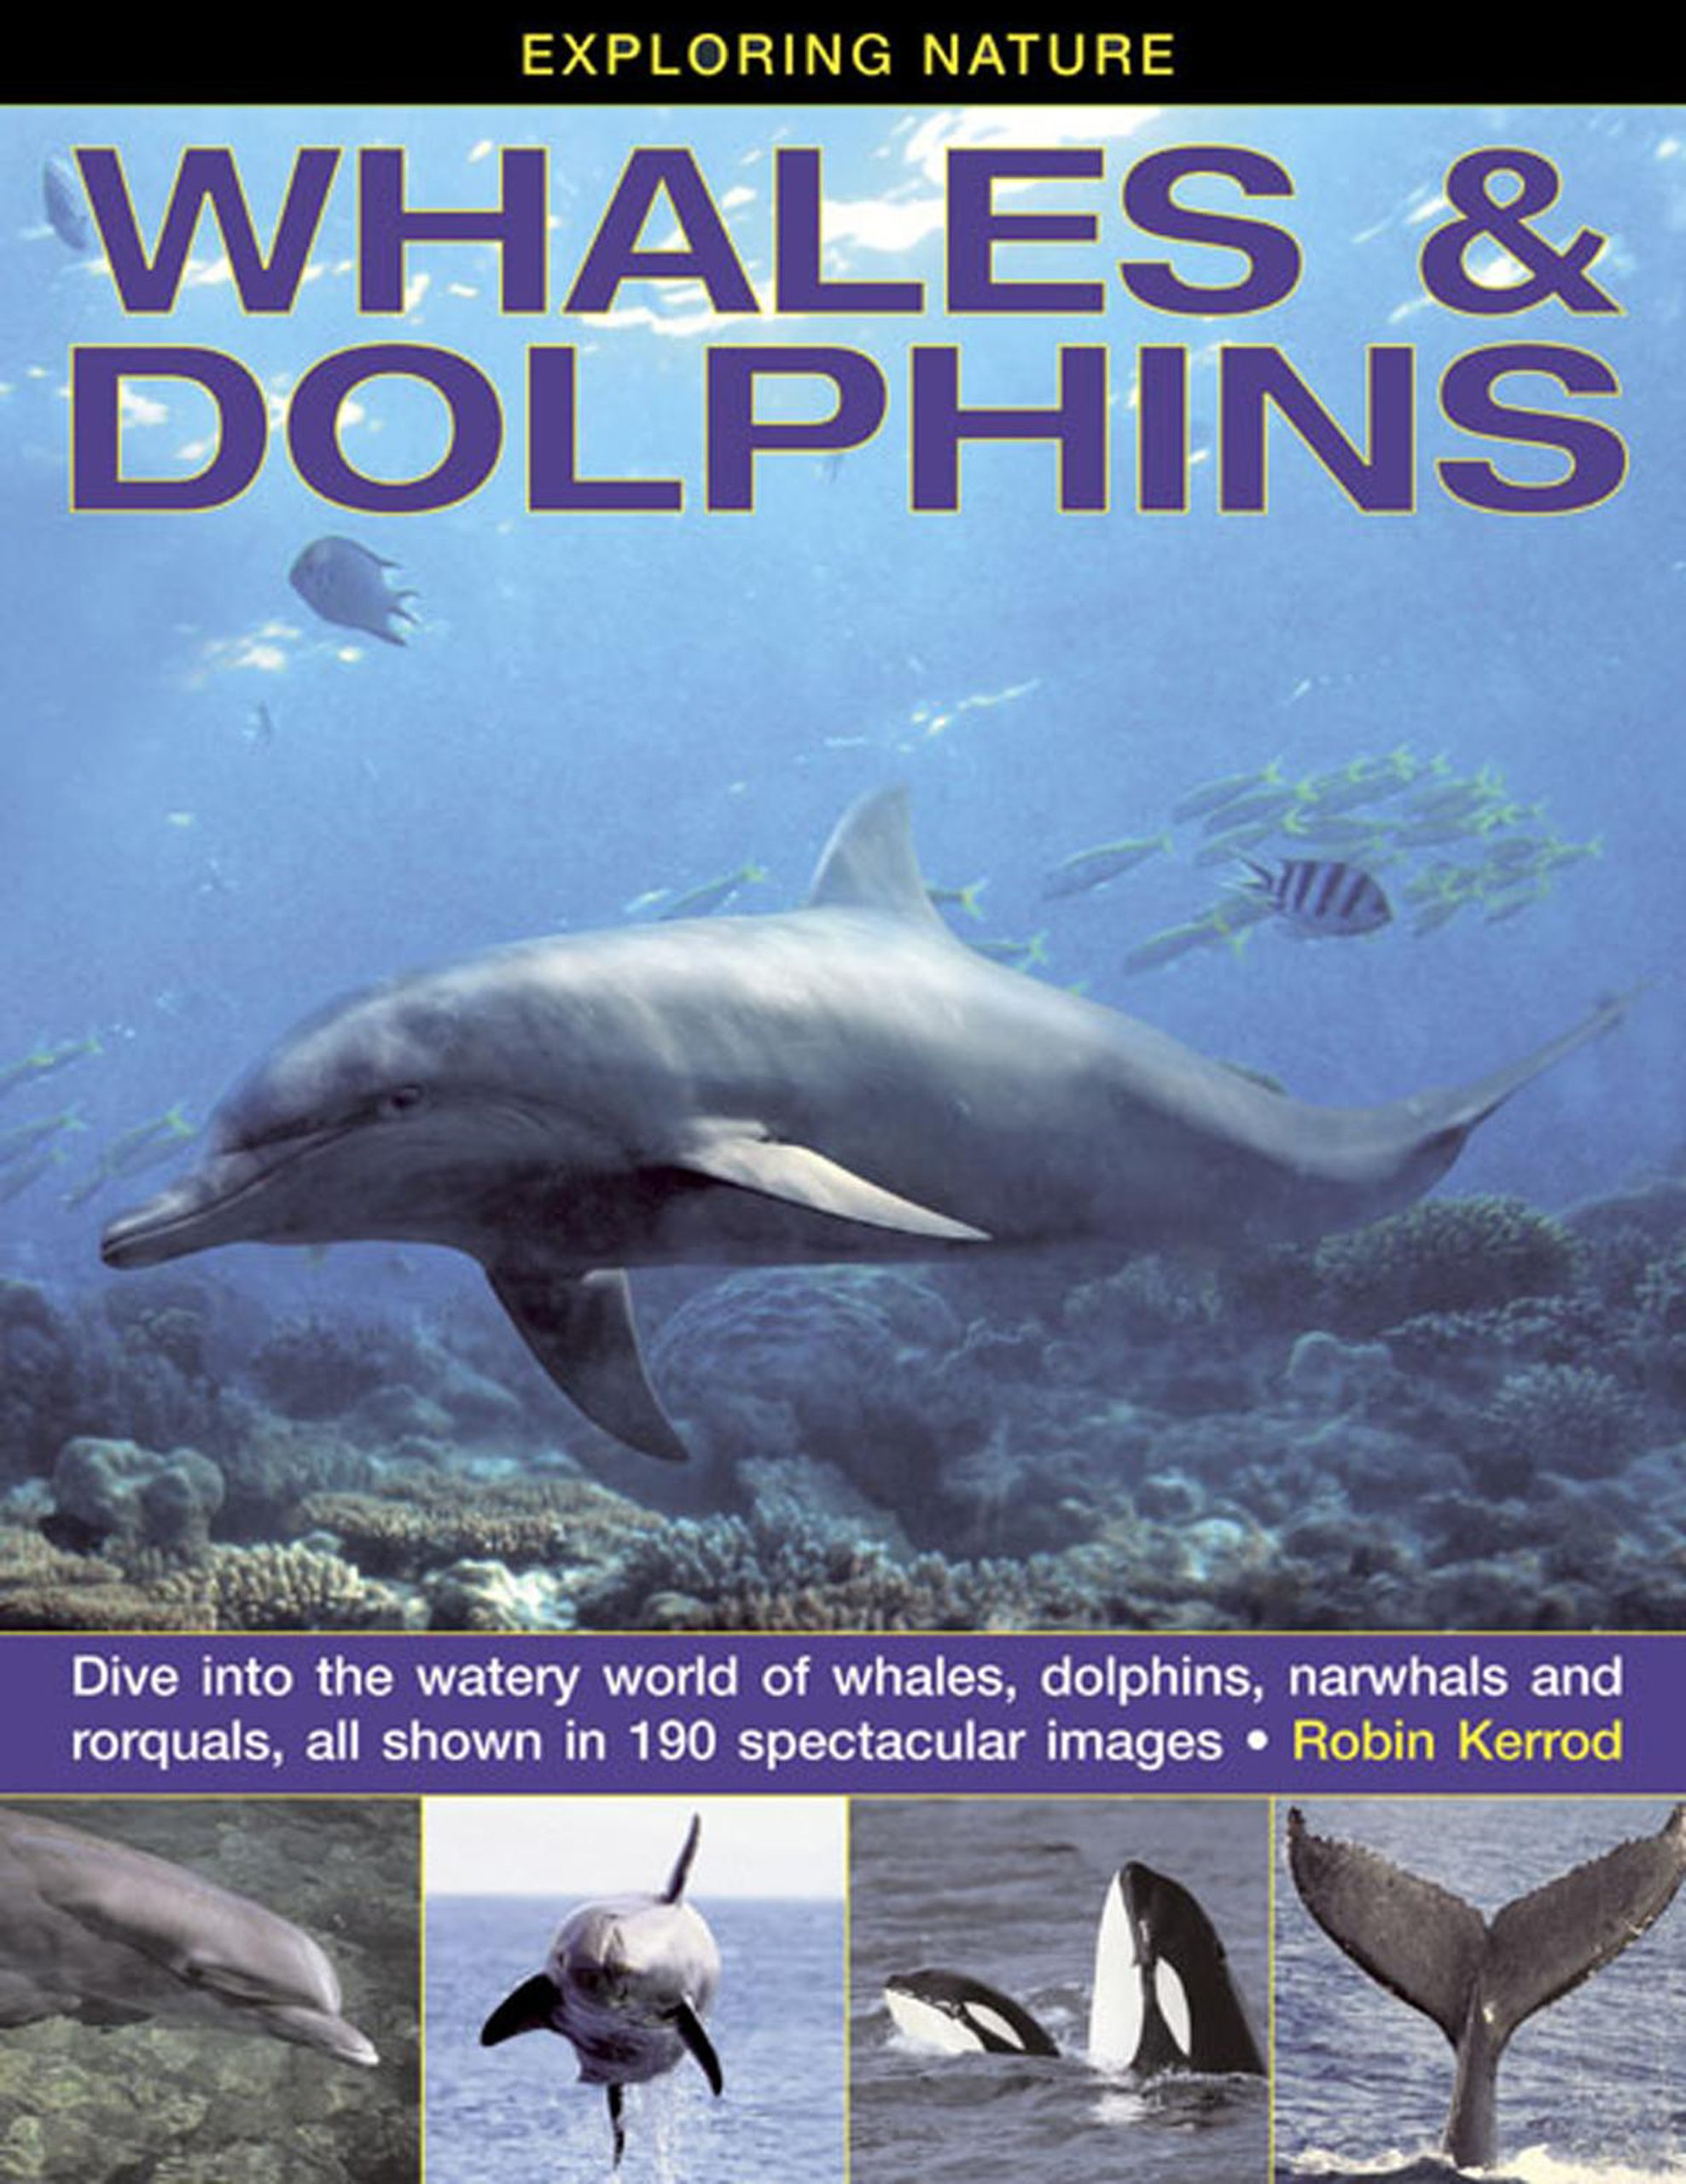 Download Exploring Nature: Whales & Dolphins: Dive Into the Watery World of Whales, Dolphins, Narwhals and Rorquals, All Shown in 190 Spectacular Images pdf